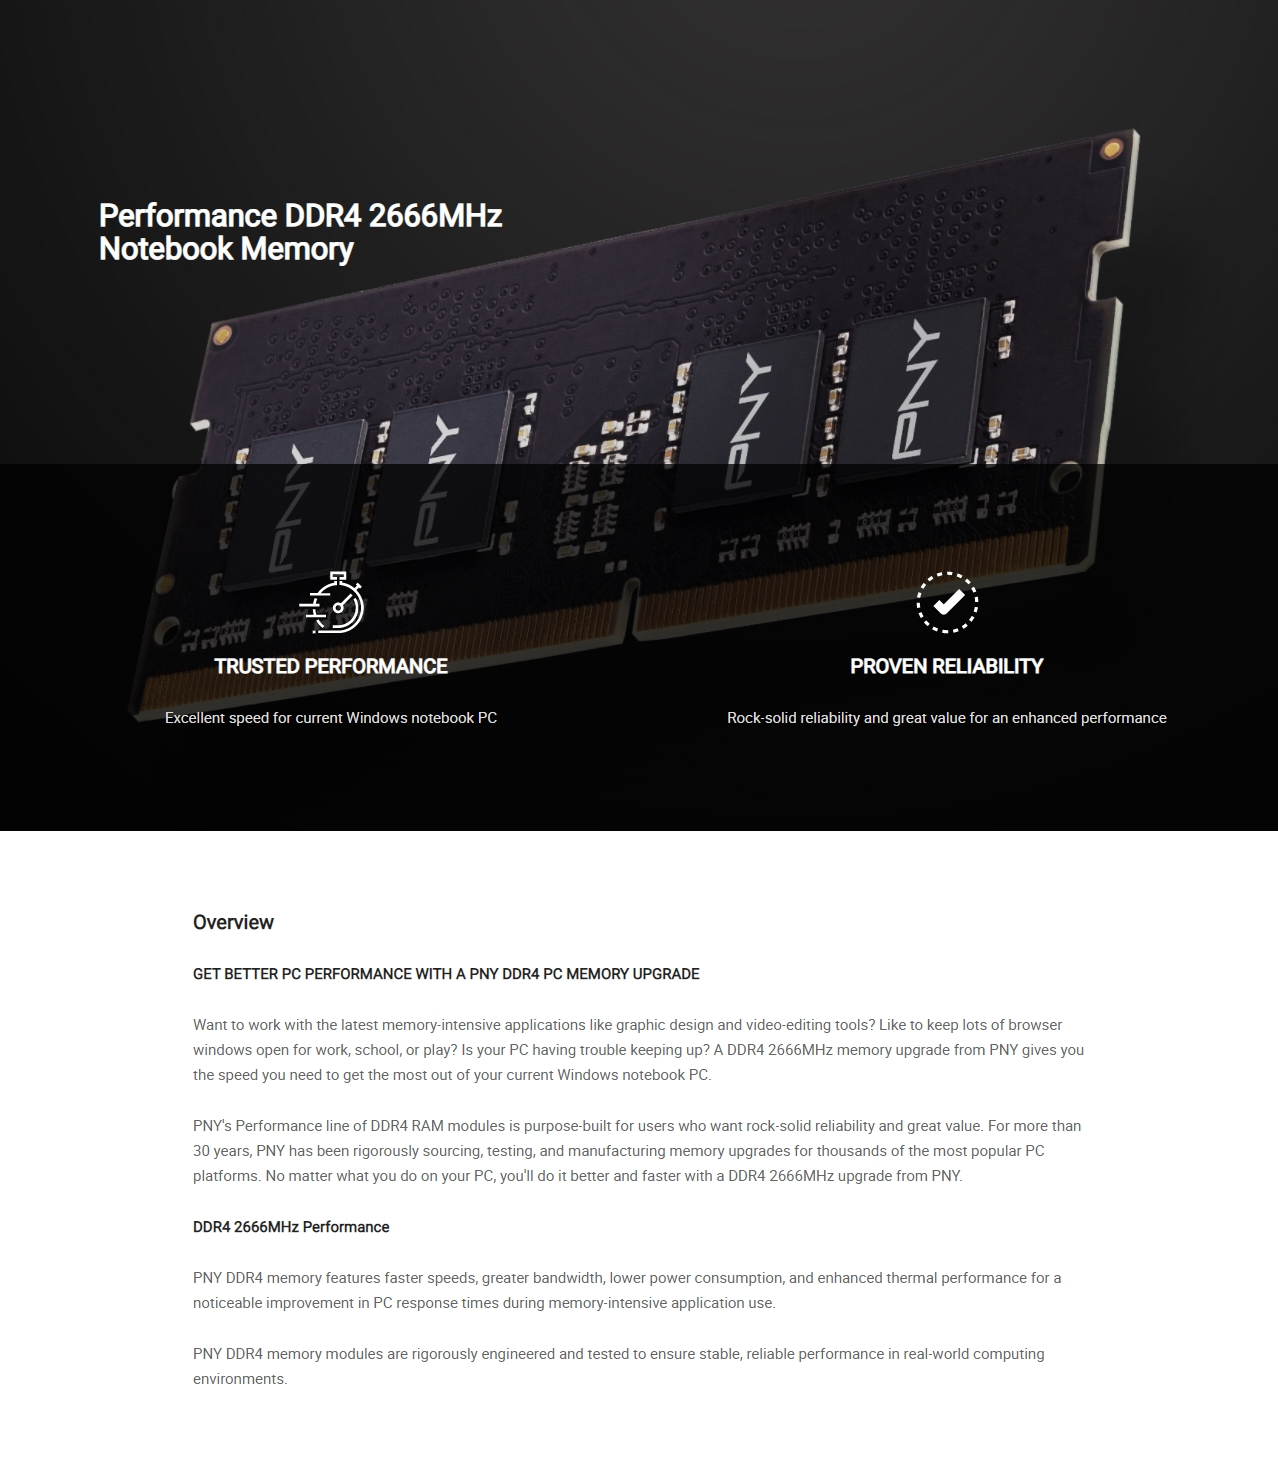 A large marketing image providing additional information about the product PNY Performance 32GB DDR4 C19 1.2v SO-DIMM 2666Mhz - Additional alt info not provided